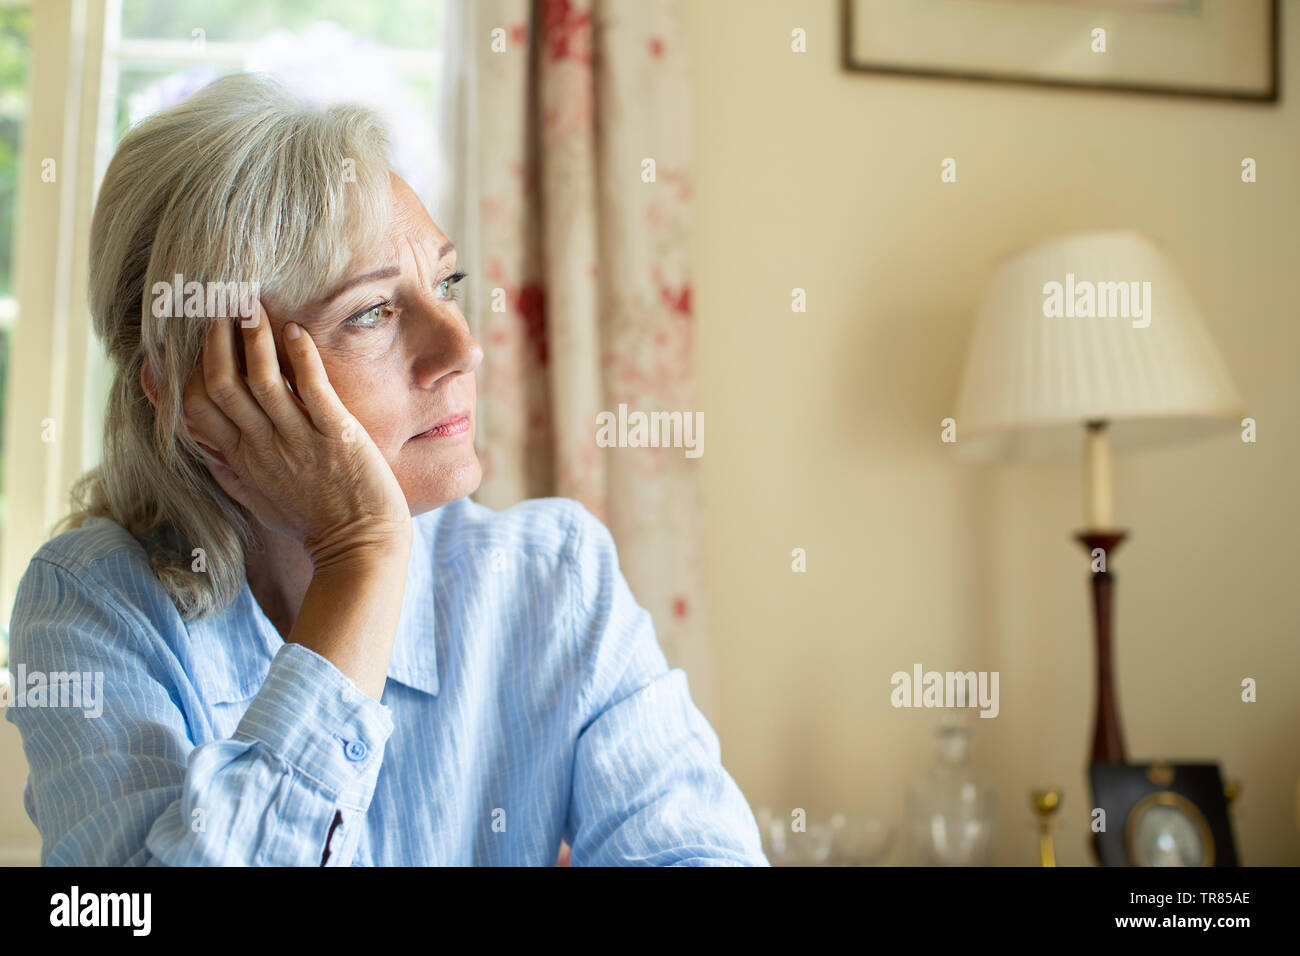 Senior Woman Suffering With Depression Looking Out Of Window At Home - Stock Image